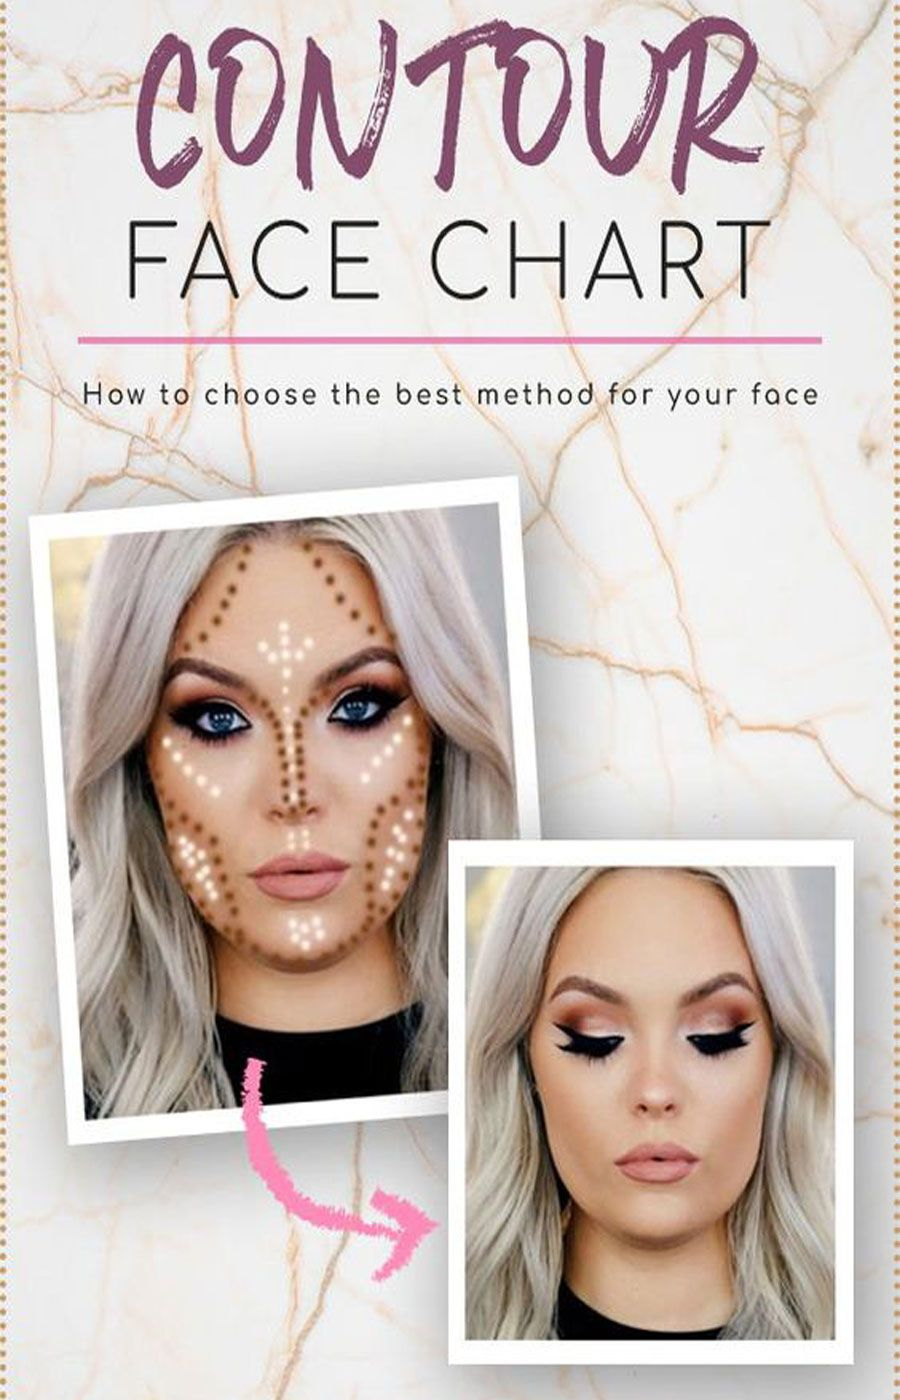 Photo of 3 Easy, Not-So-Dramatic Ways to Contour Your Face with Makeup